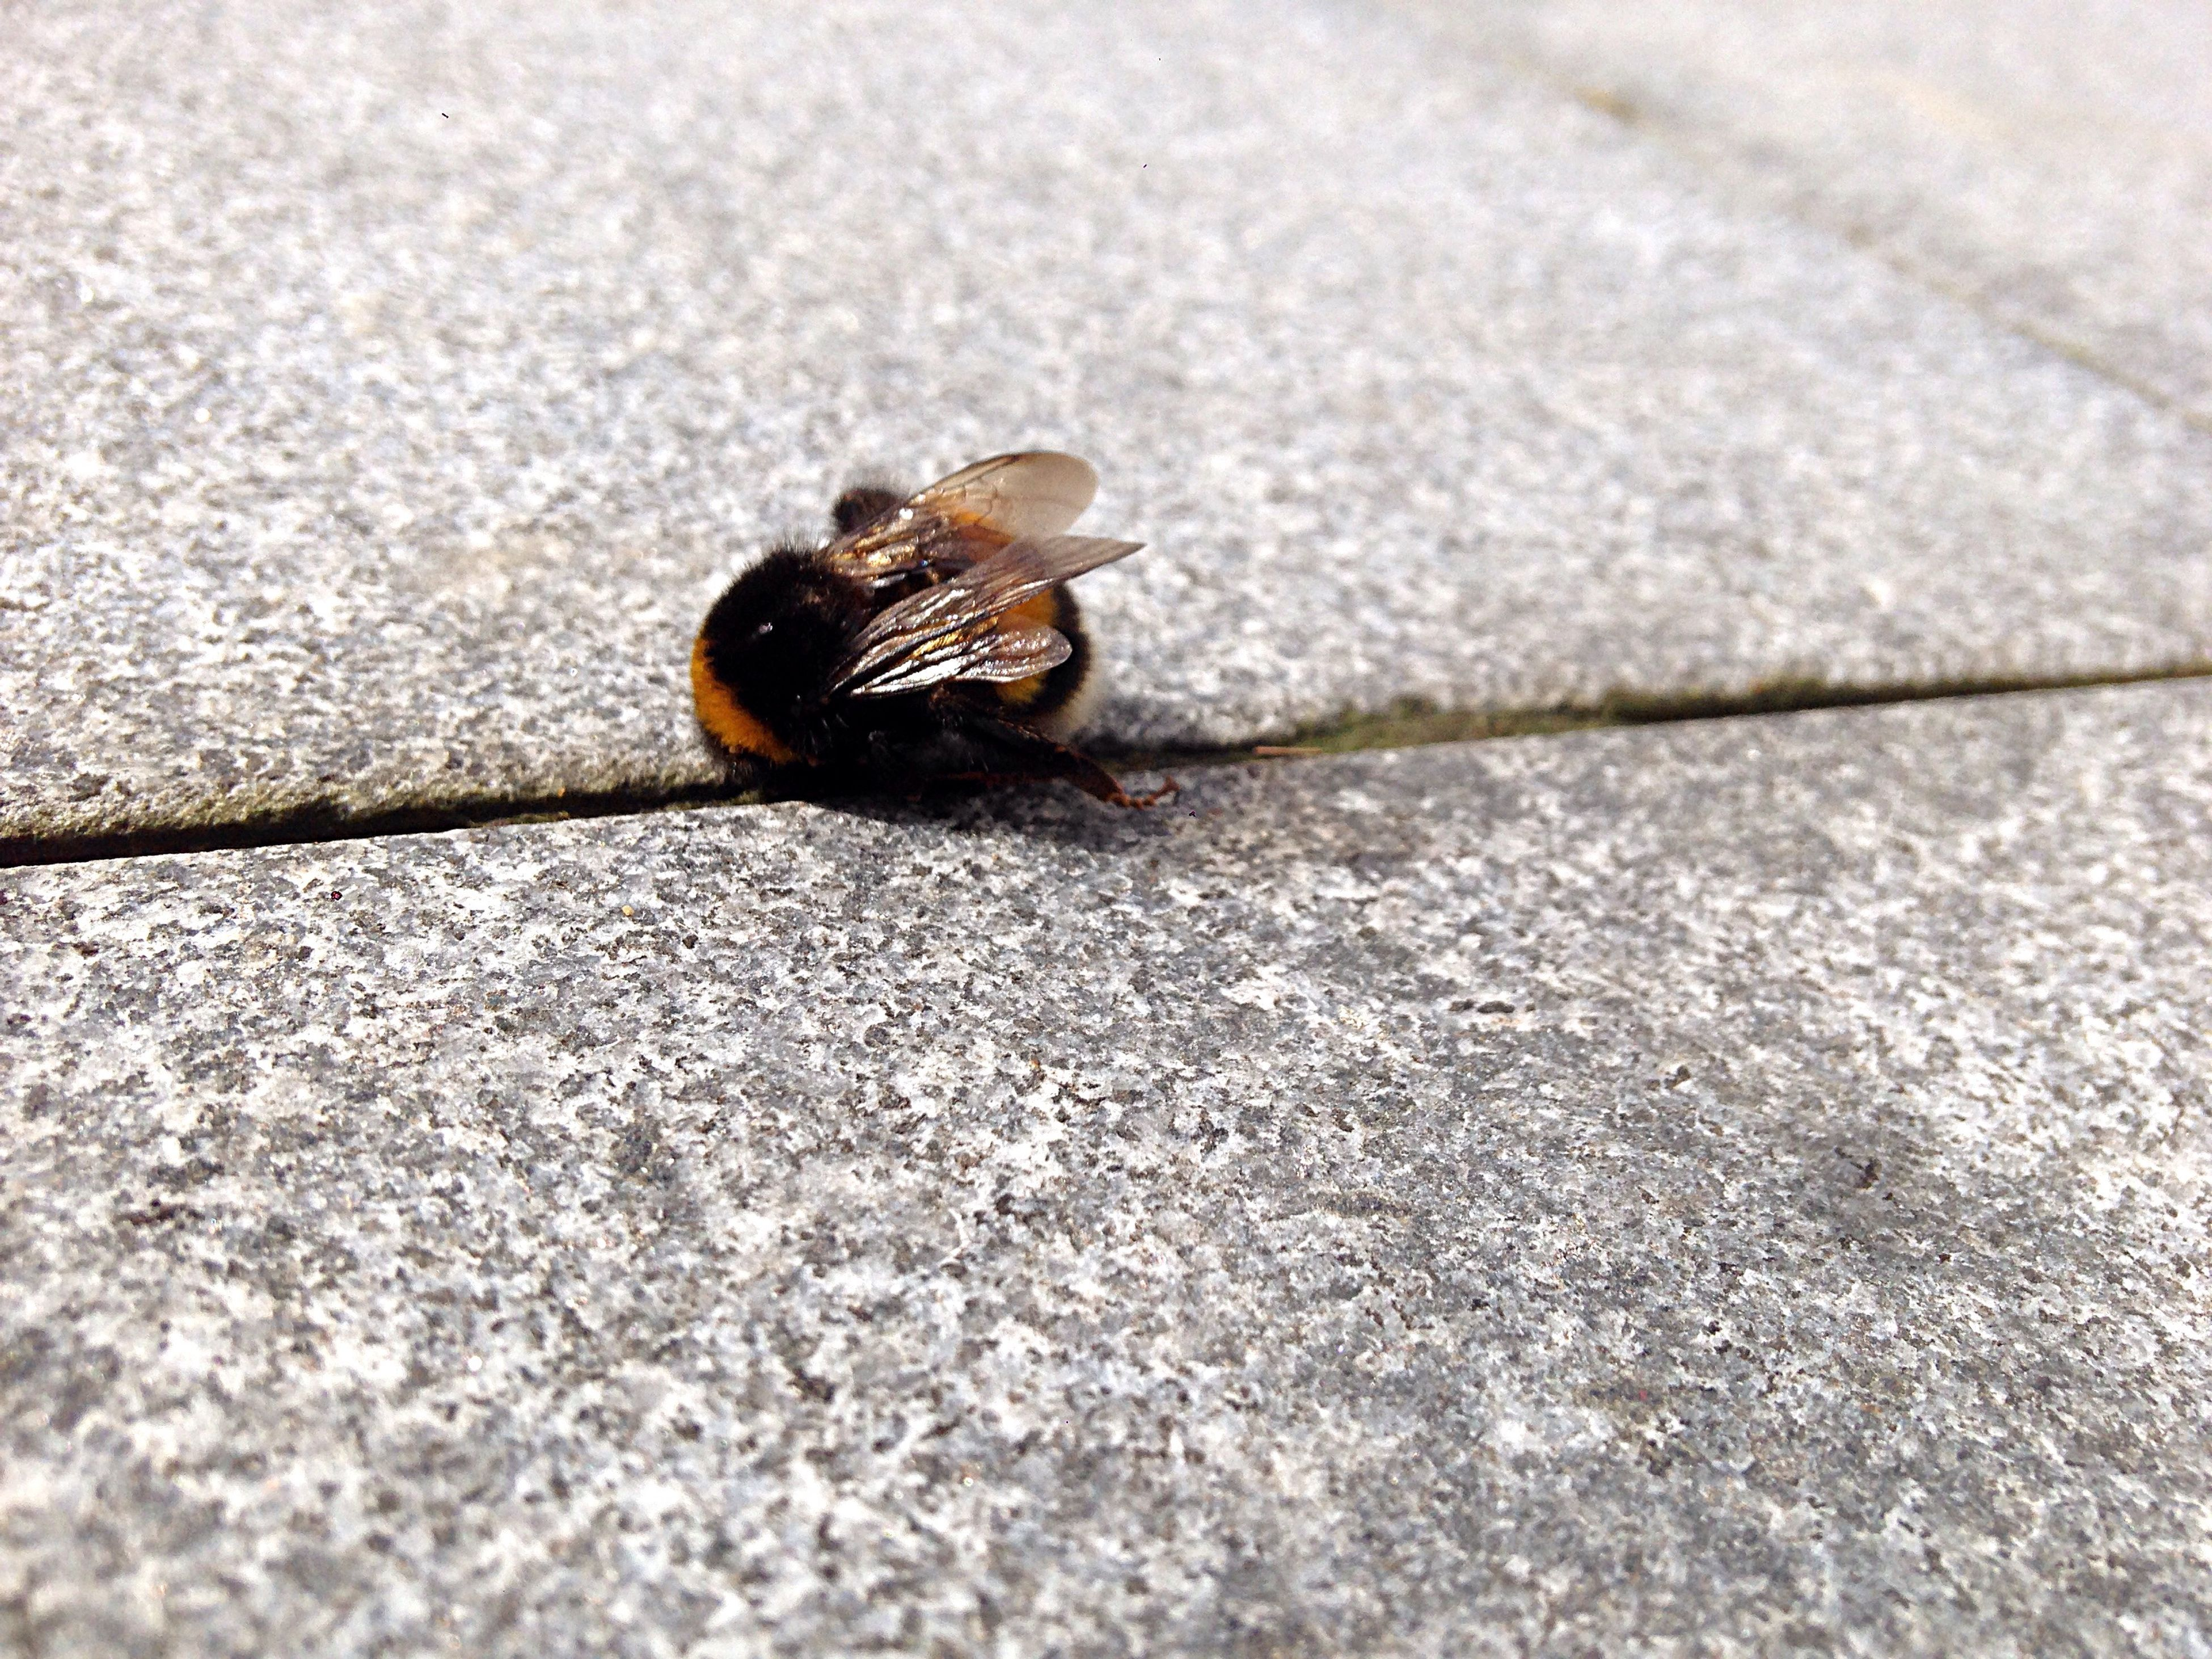 snail, one animal, animal themes, animals in the wild, wildlife, shell, gastropod, sunlight, nature, outdoors, no people, animal wildlife, close-up, day, fragility, insect, slimy